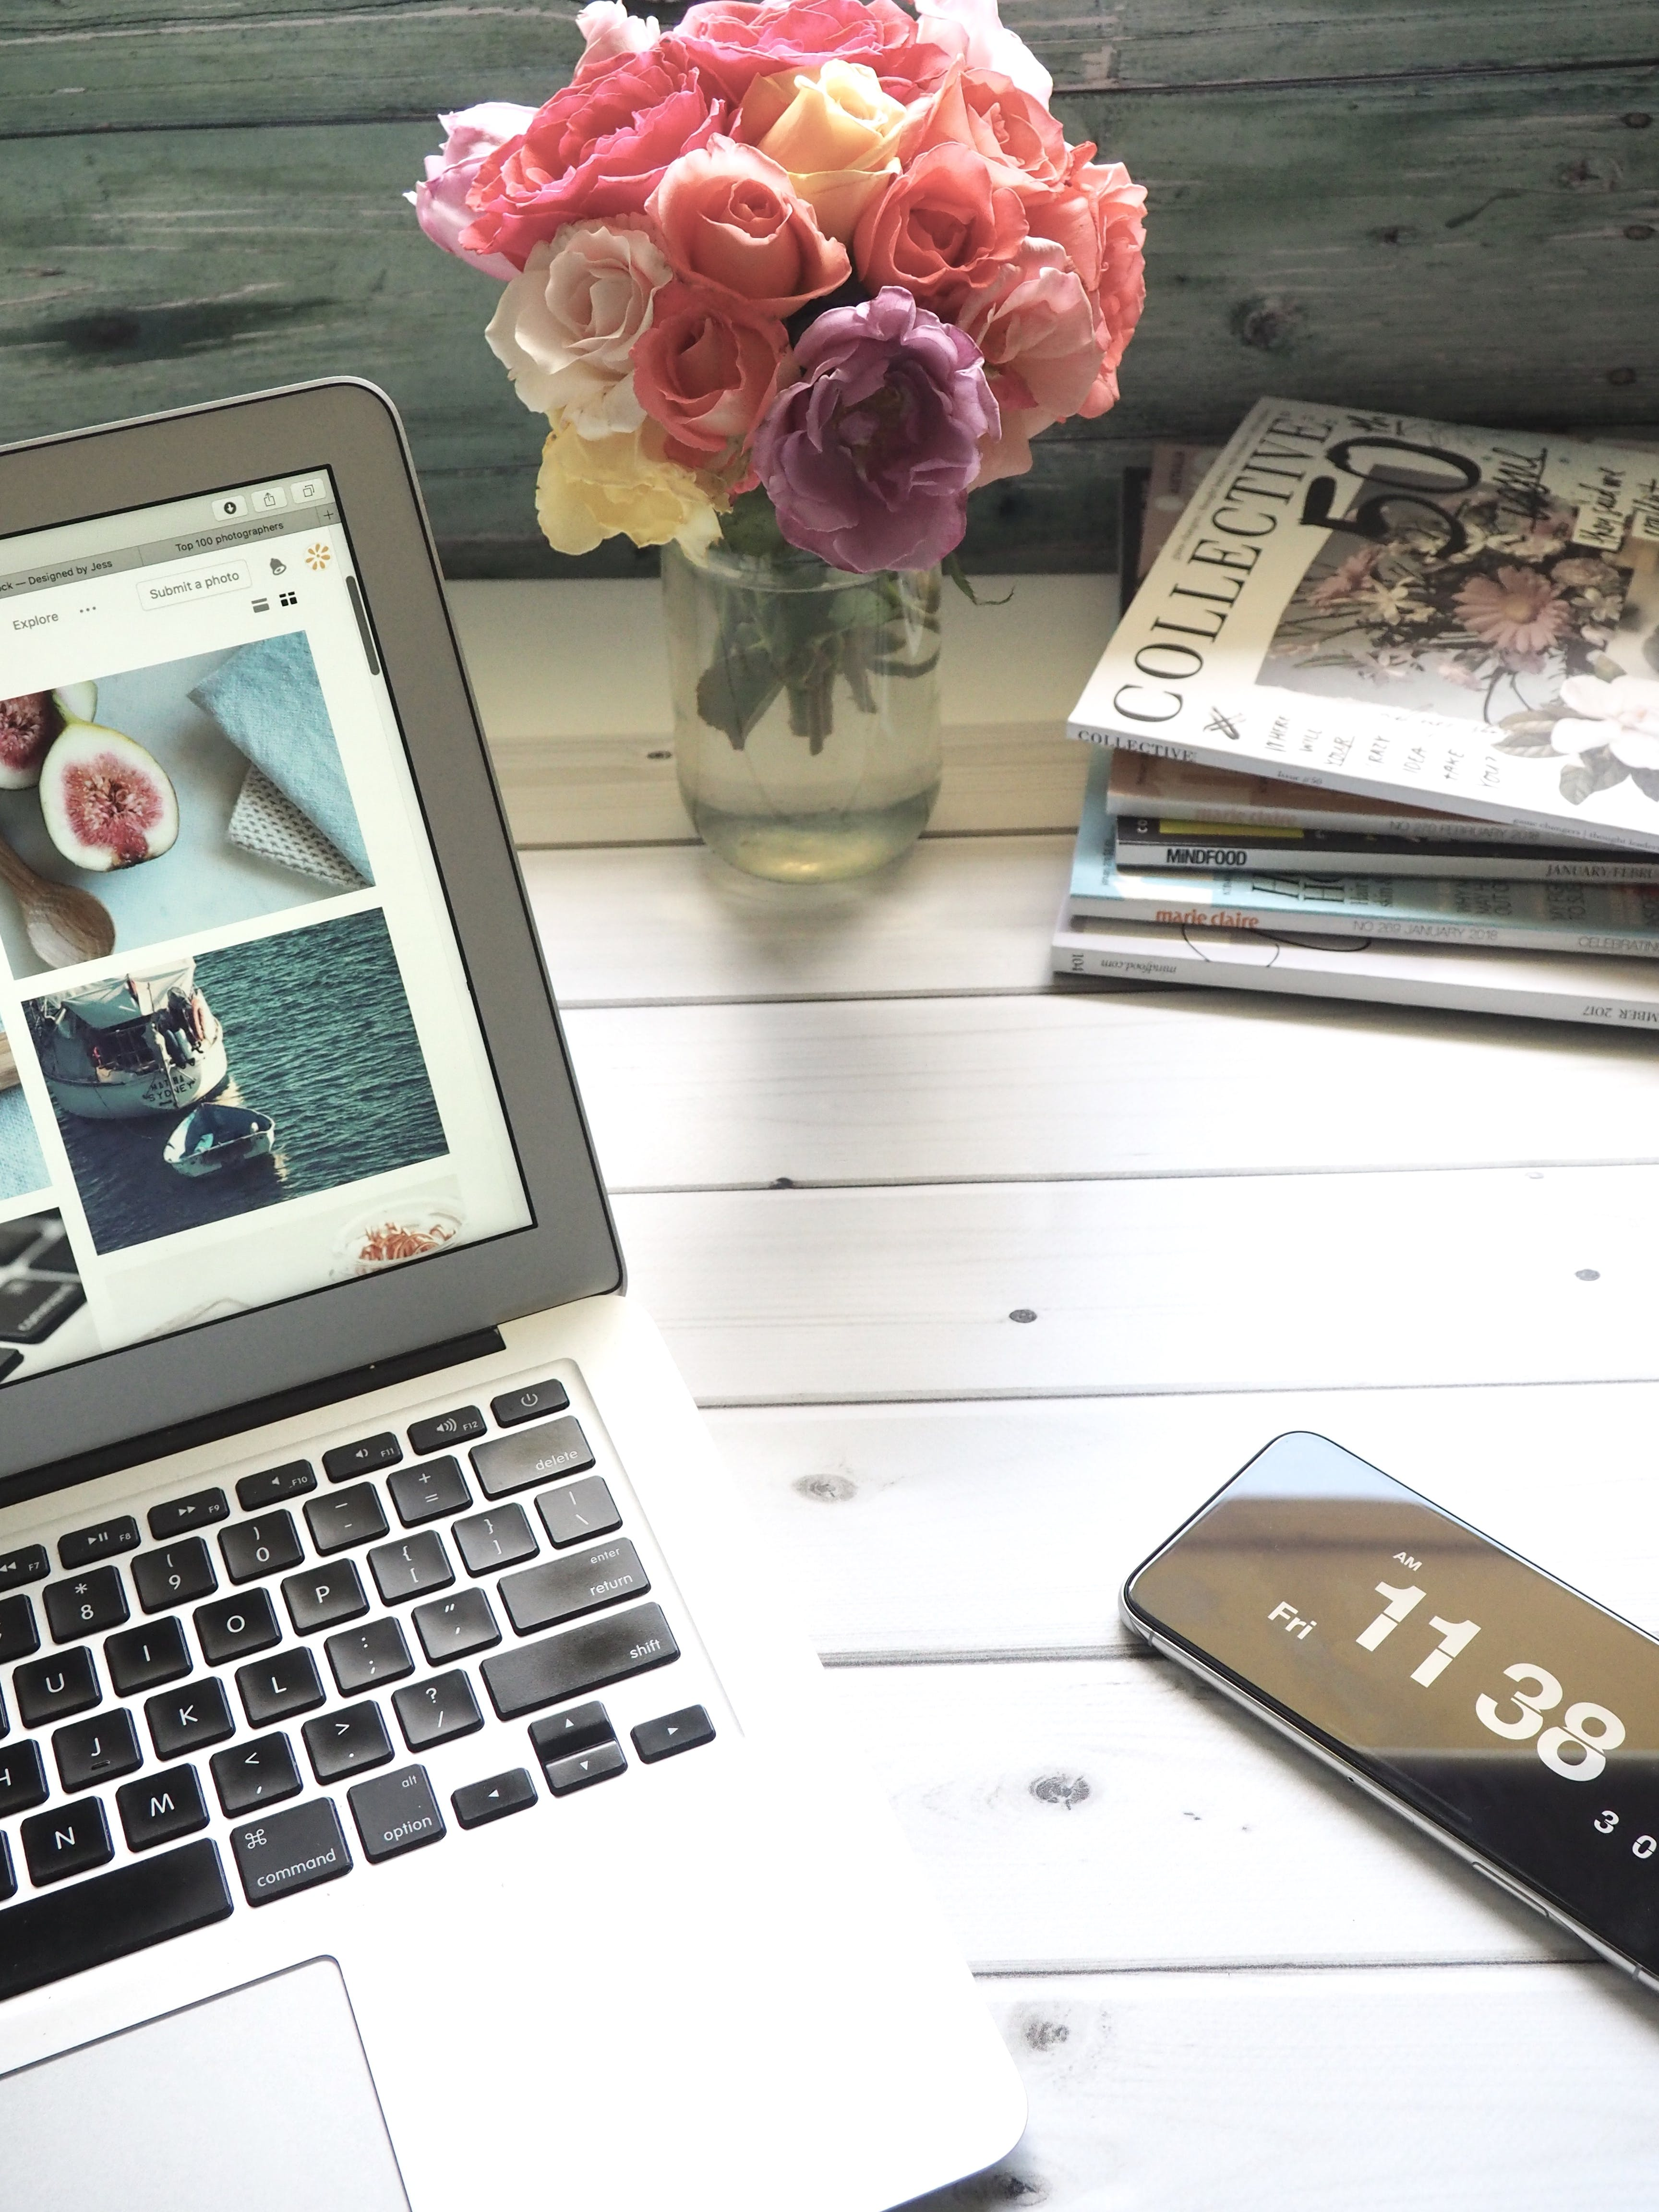 Macbook Air, Flower Bouquet and Magazines on White Table